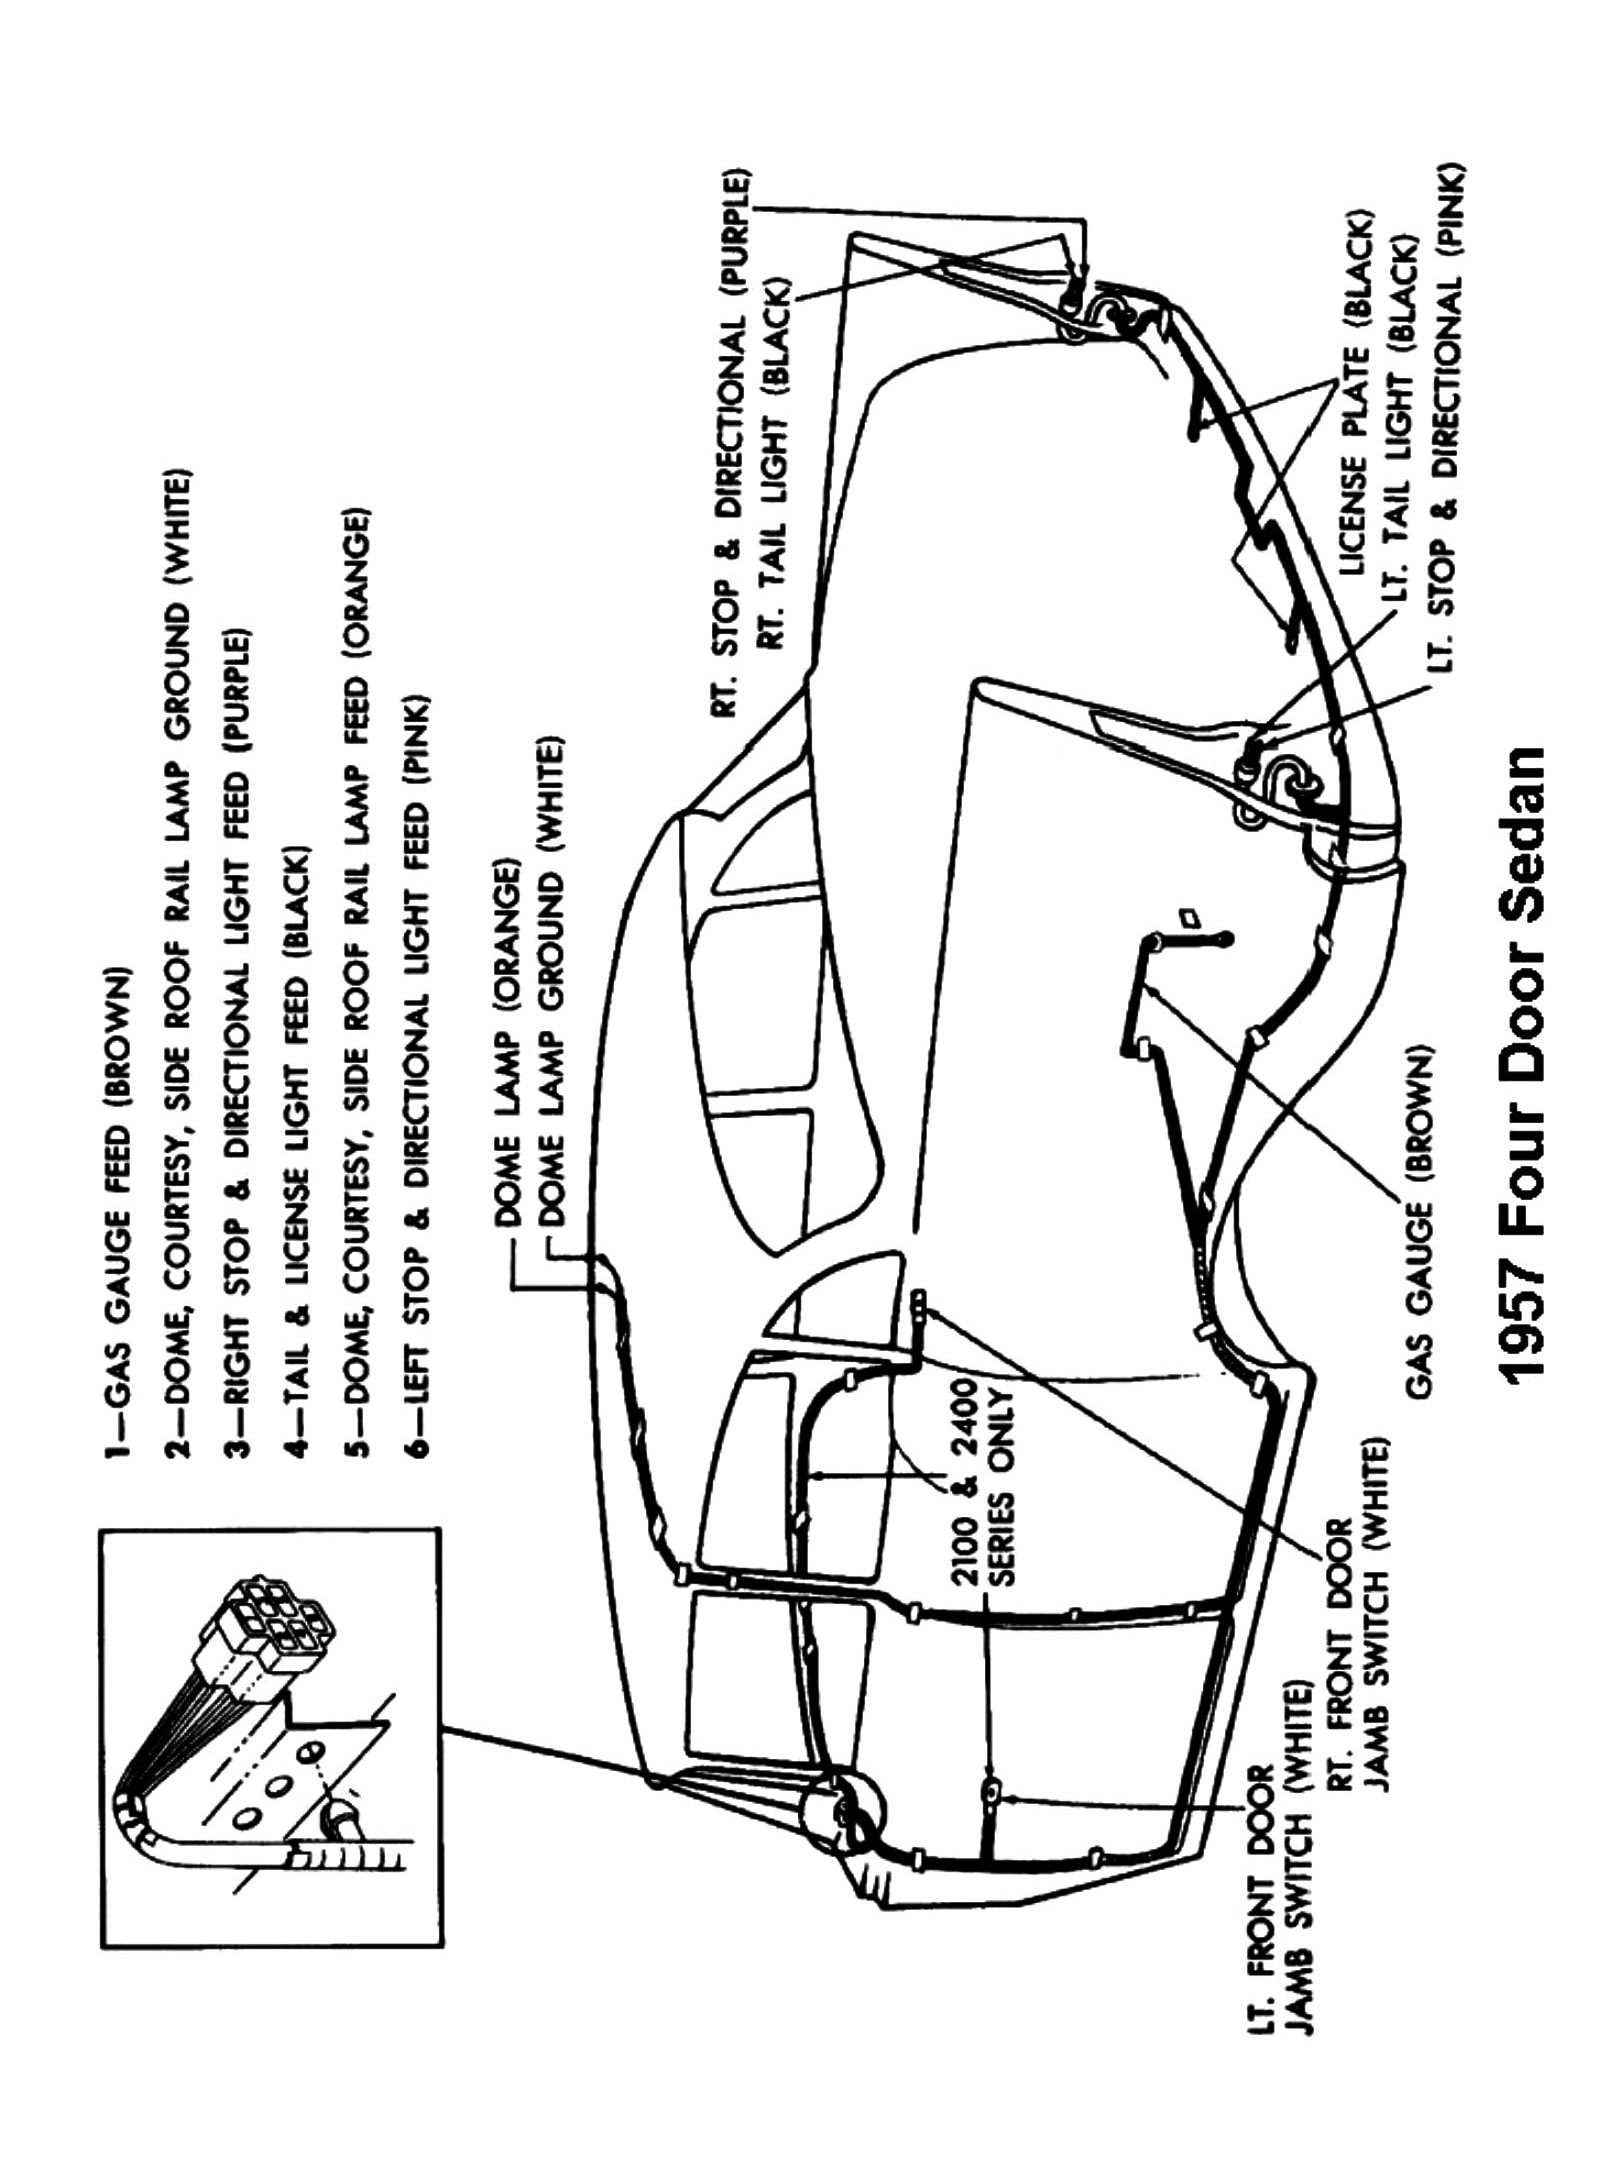 Overdrive Wiring Diagram For Chevy